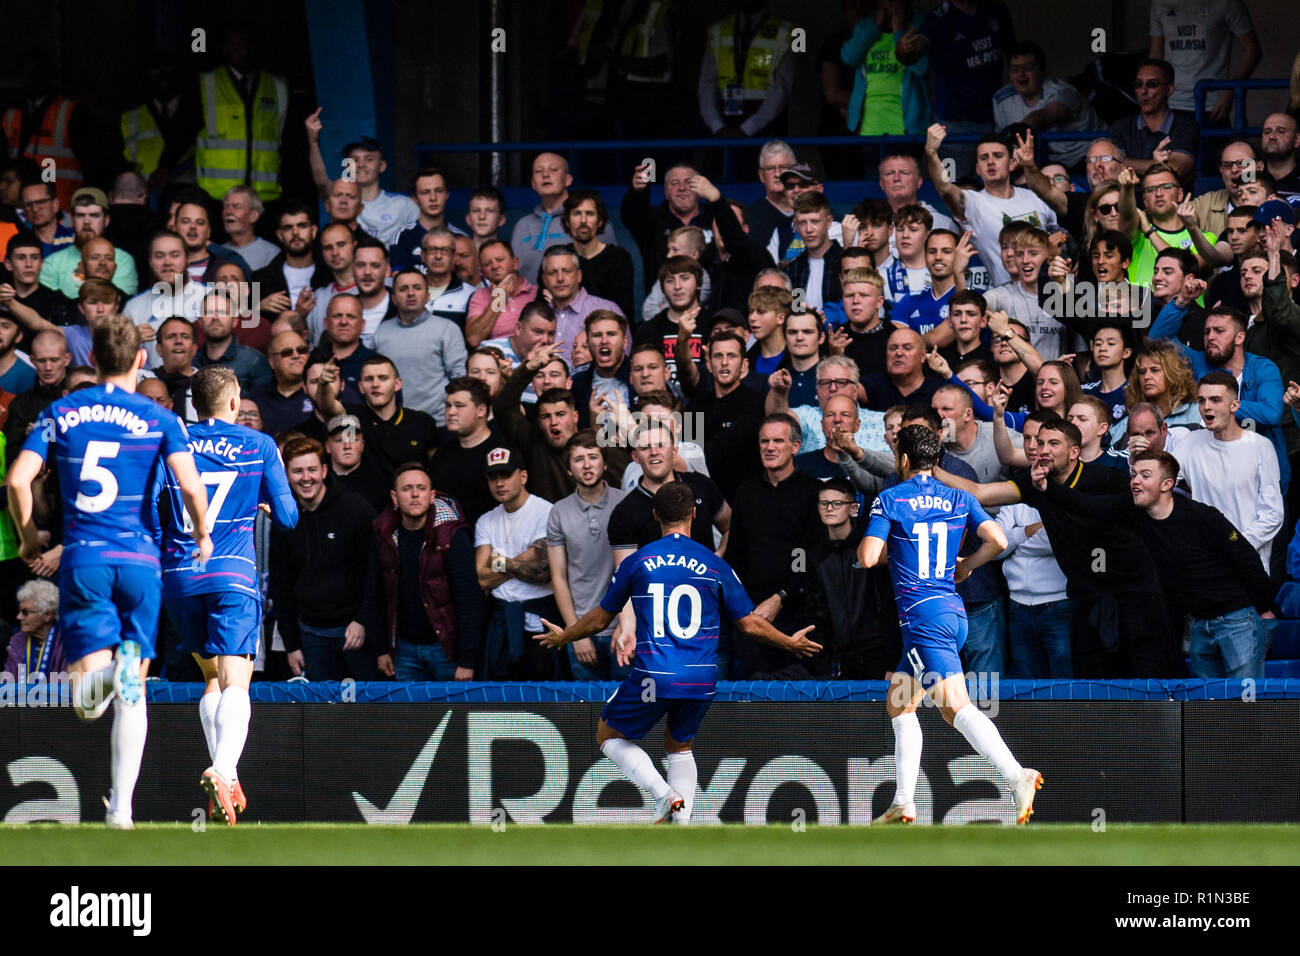 London England September 15 Eden Hazard Of Chelsea Fc Celebrate 2nd Goal On Front Of Away Fans During The Premier League Match Between Chelsea Fc And Cardiff City At Stamford Bridge